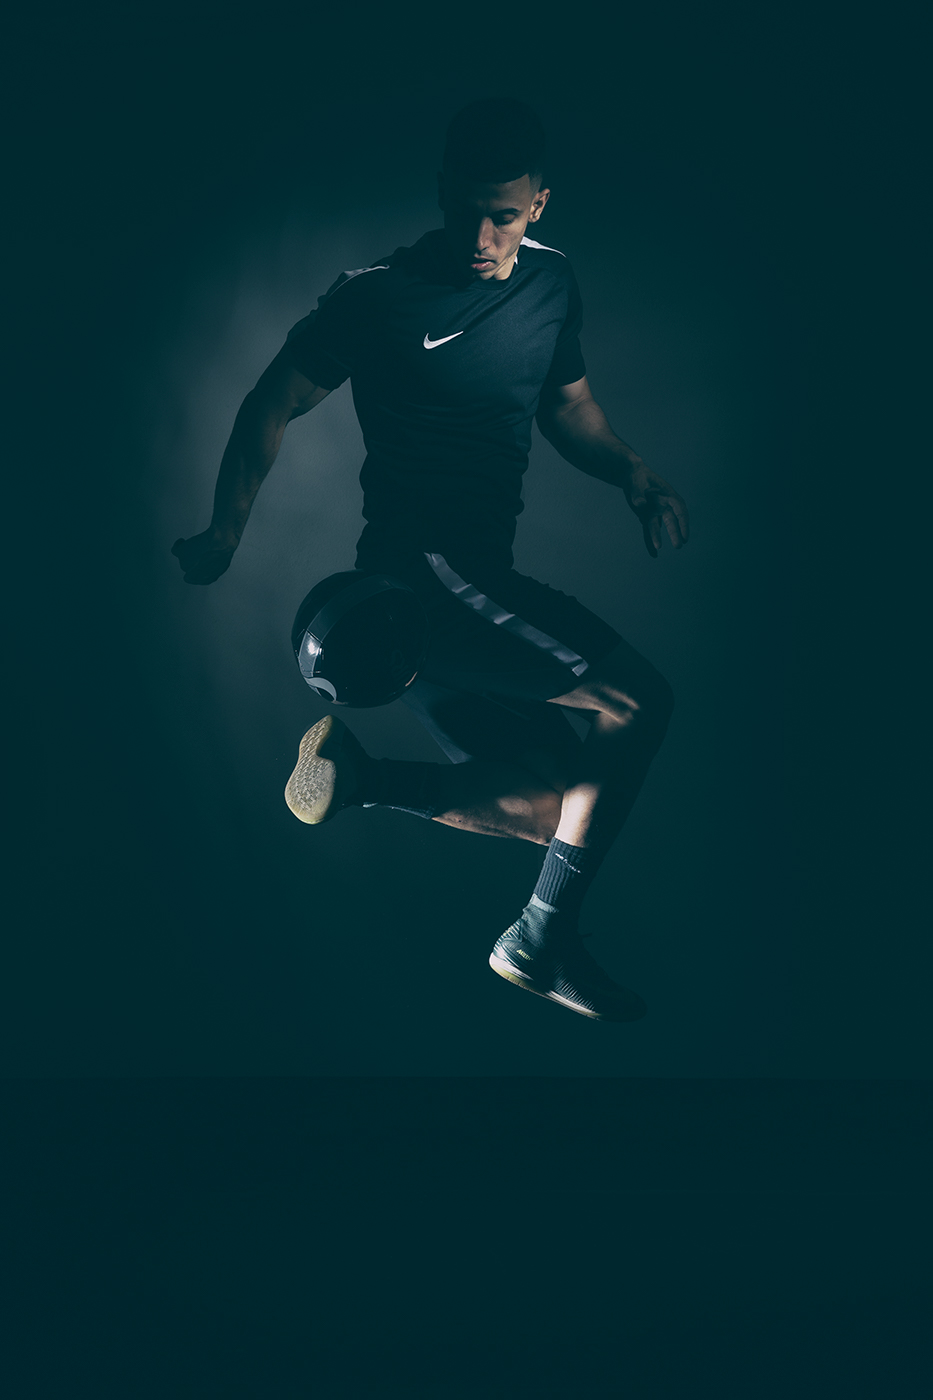 Advertising photographer Portland - soccer player doing a ball trick indoors with dramatic lighting